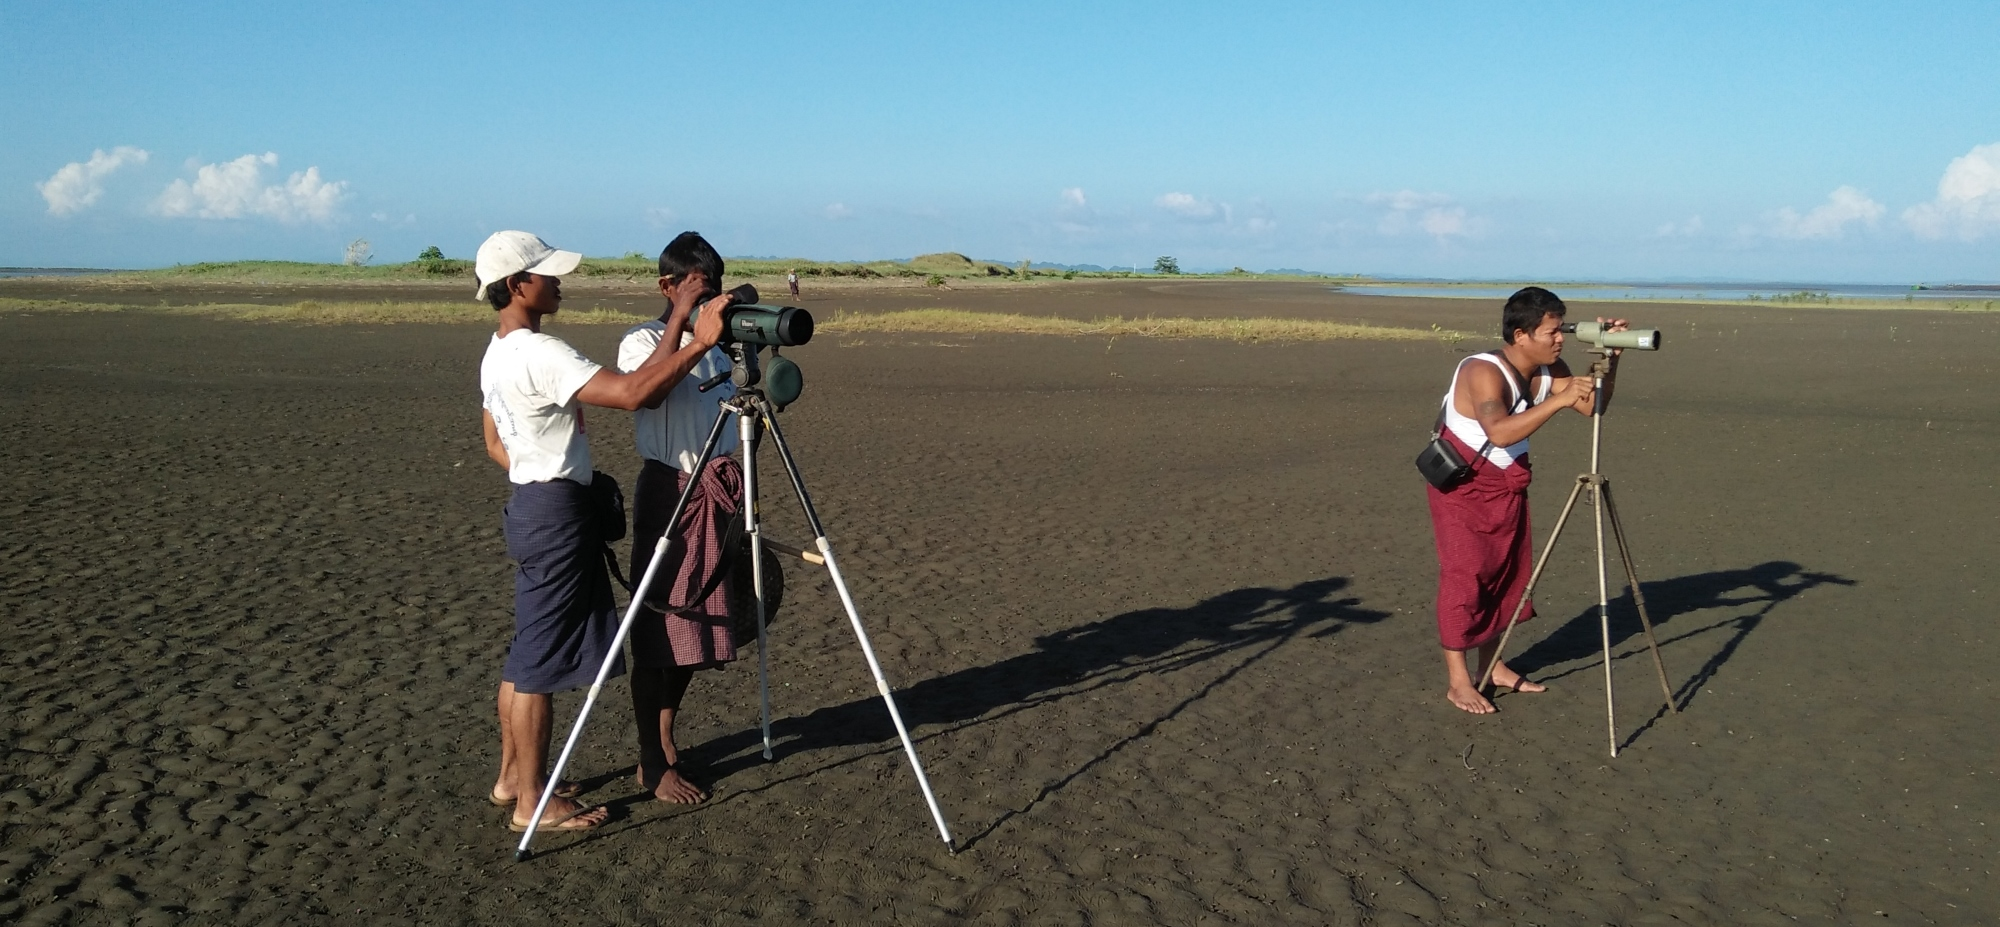 Project personnel search for spoonbills and other shorebirds. Photo credit: BANCA